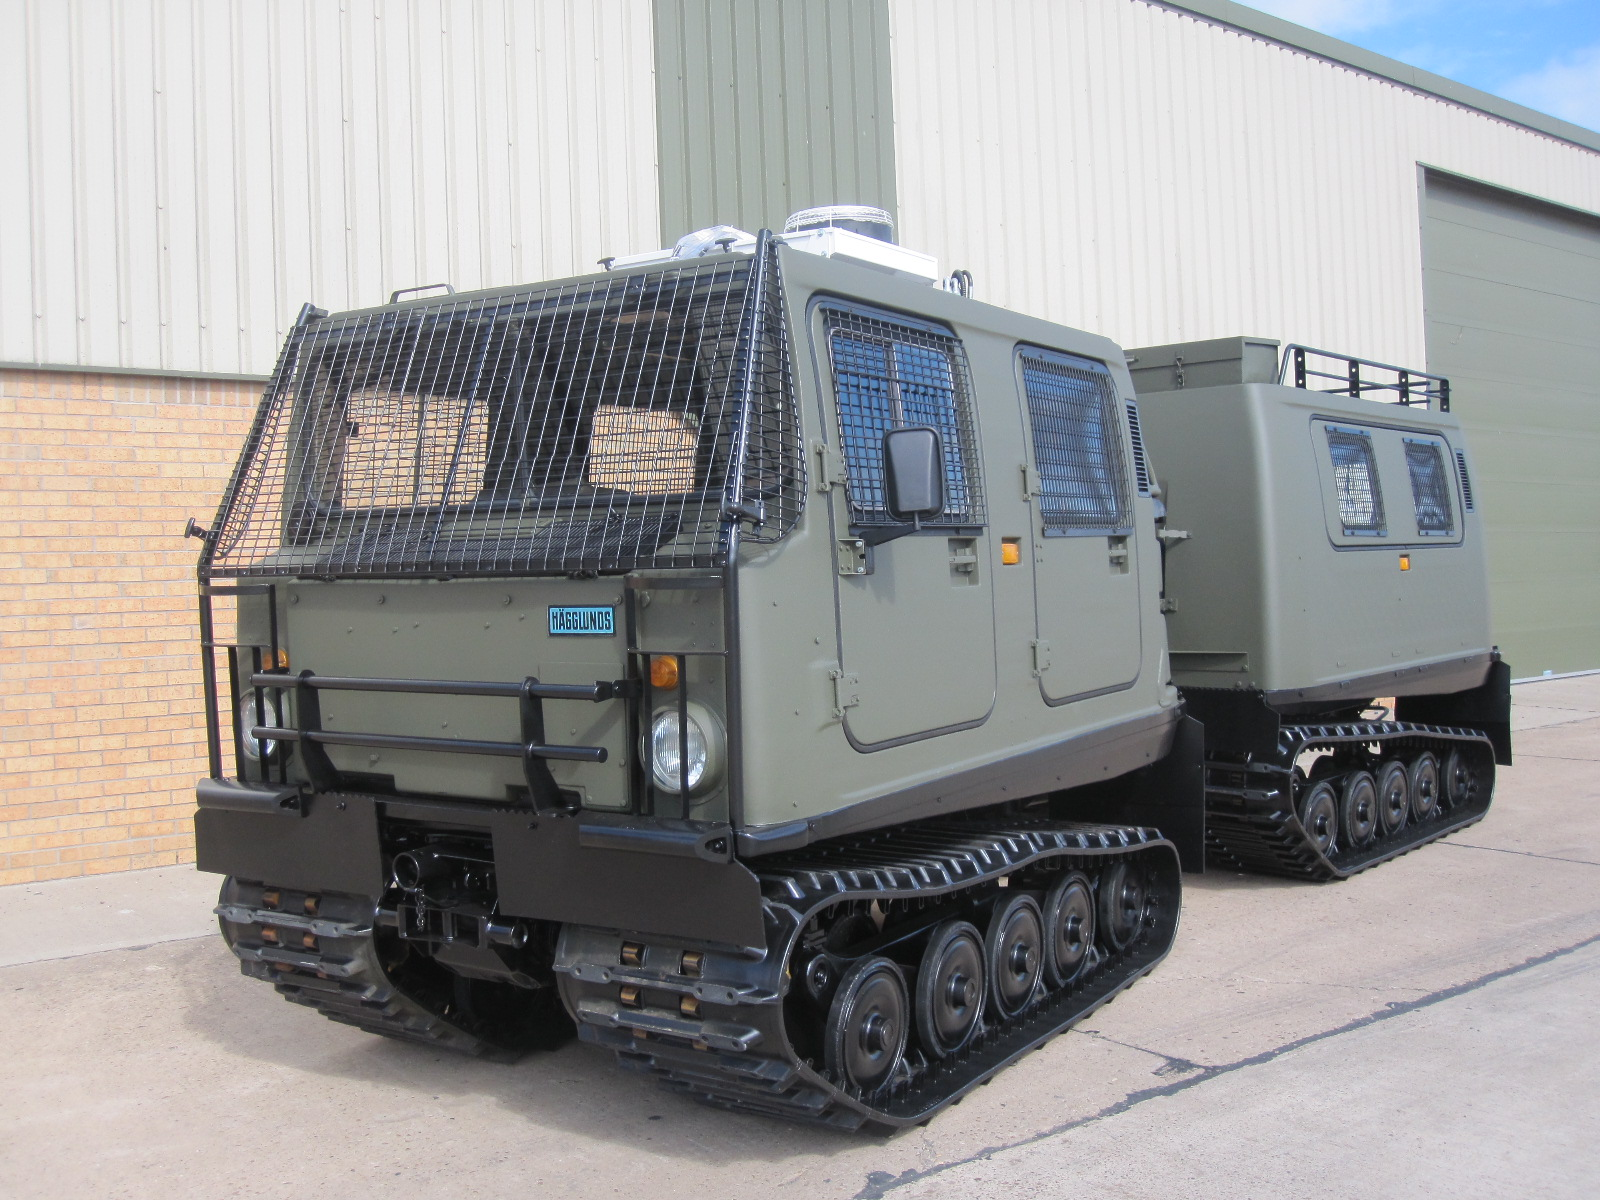 Hagglund BV206 Personnel Carrier (Petrol/Gasolene) for sale | military vehicles